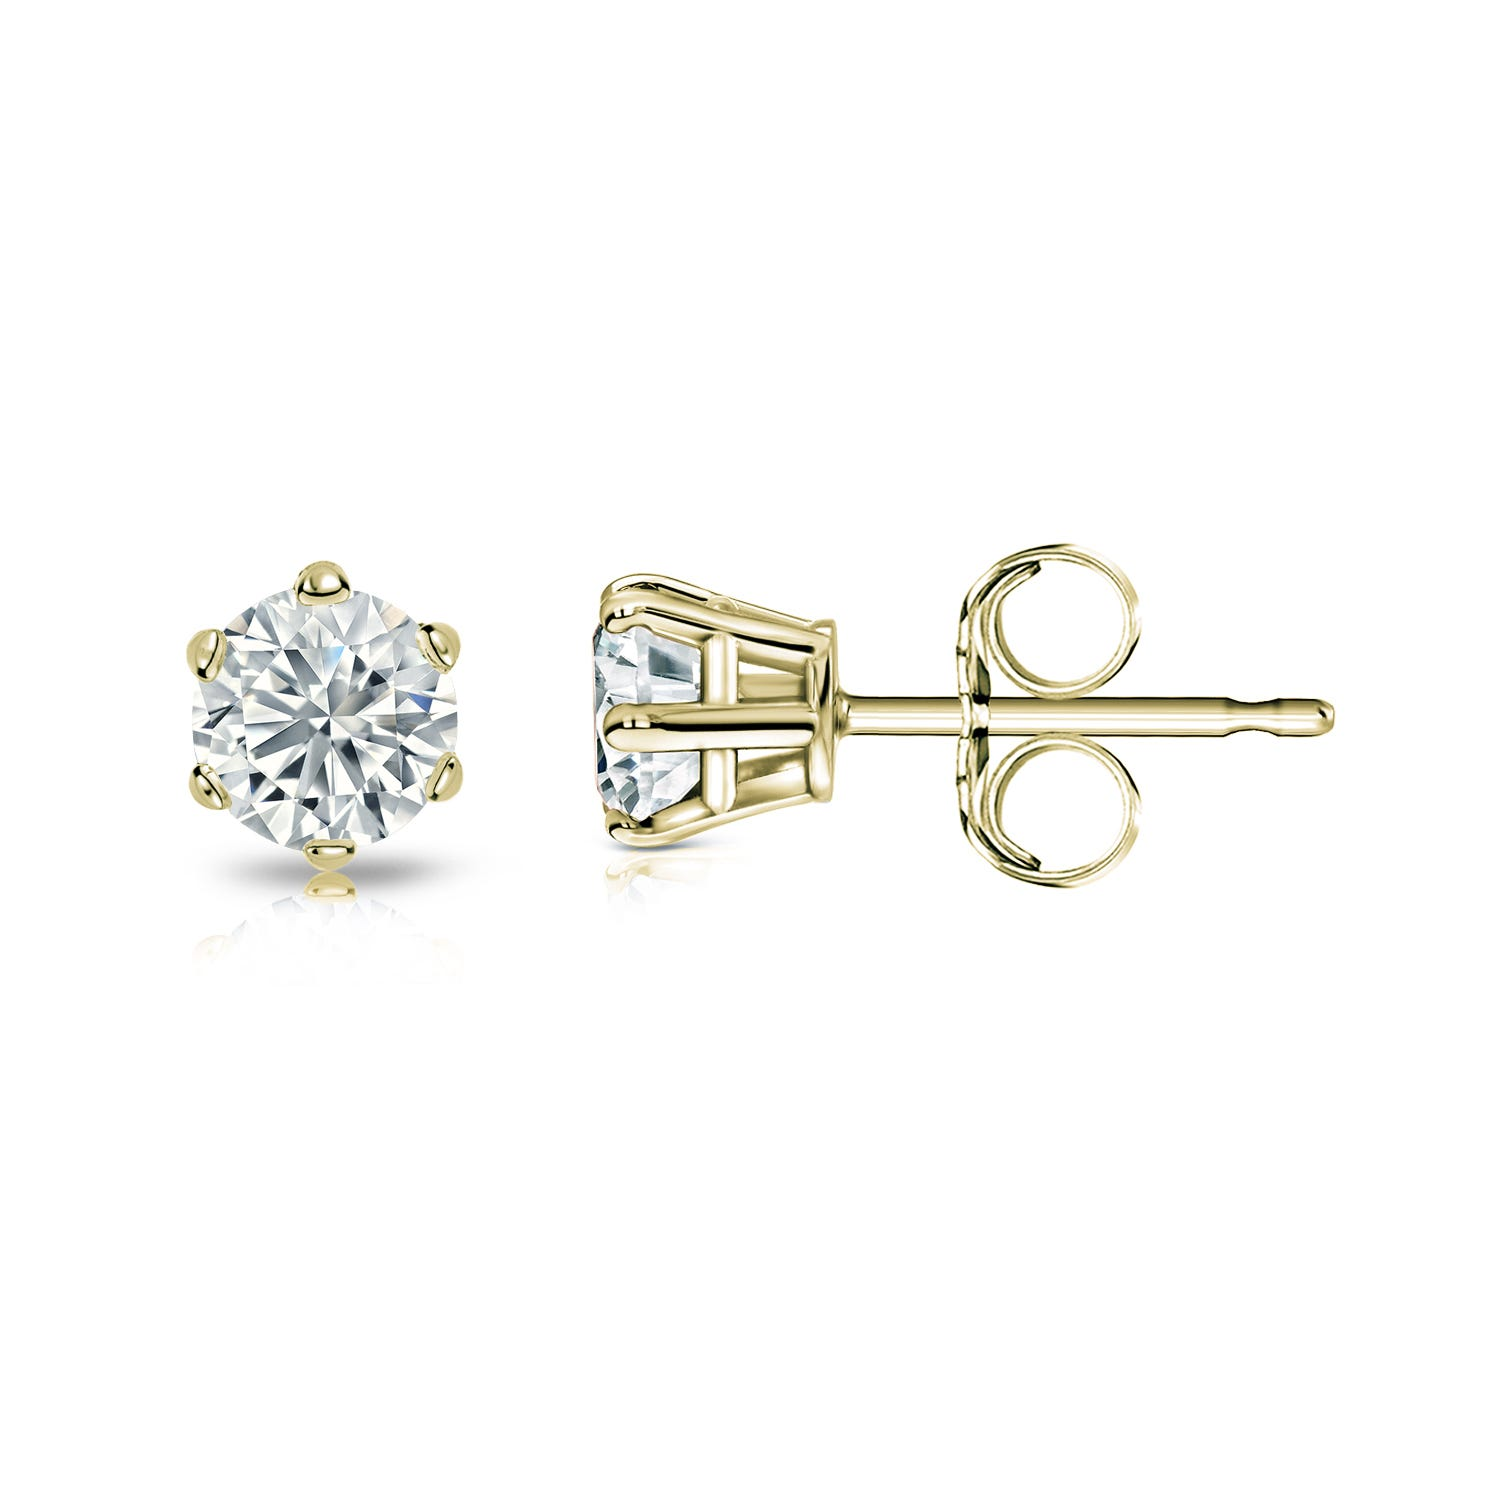 Round Diamond 1/7ctw. (IJ-SI2) Solitaire Stud 6-Prong Earrings in 14K Yellow Gold